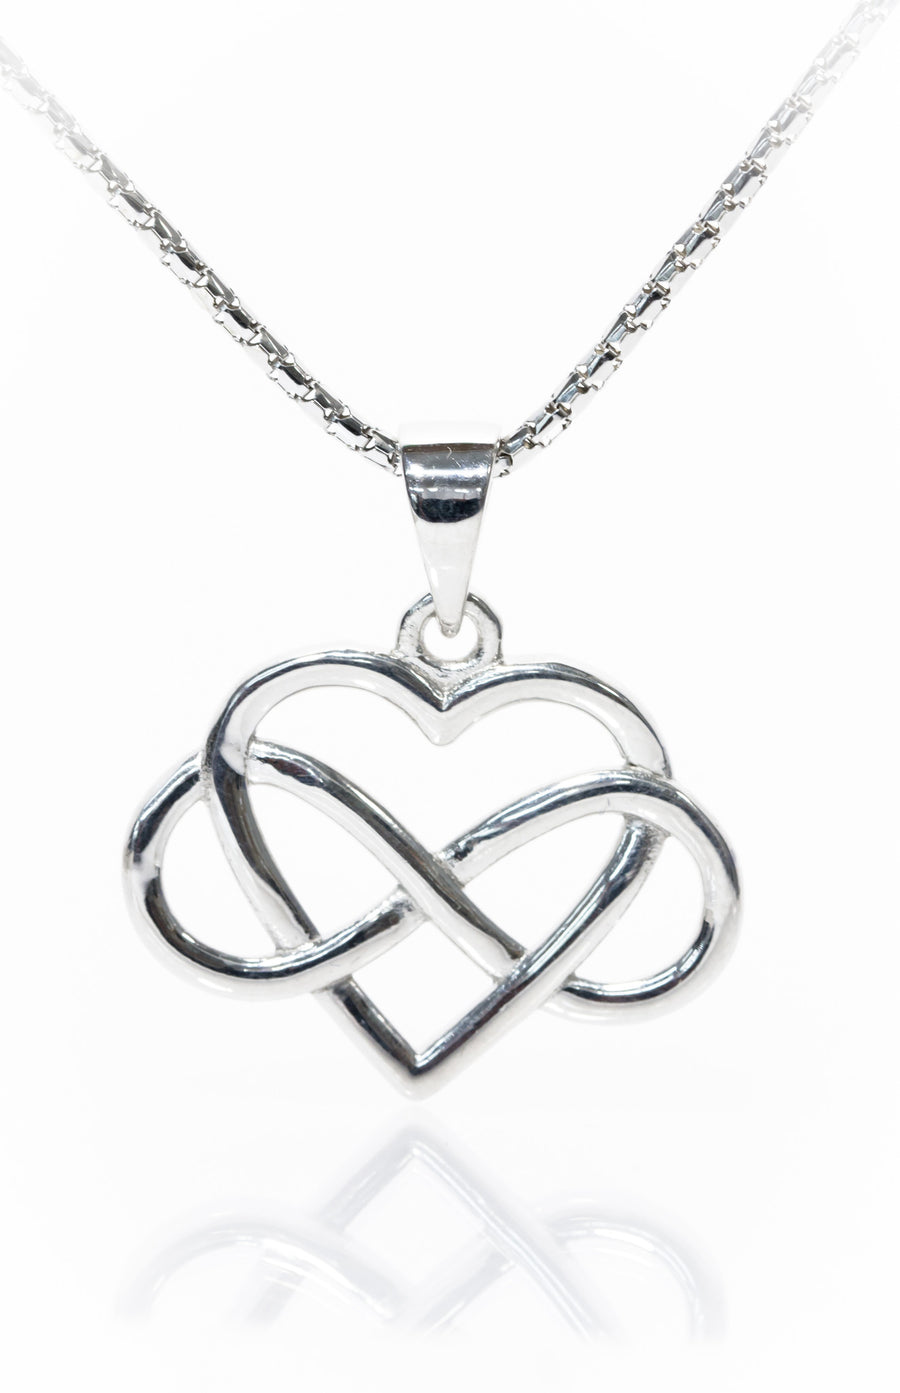 Heart Pendant from the Infinity Range